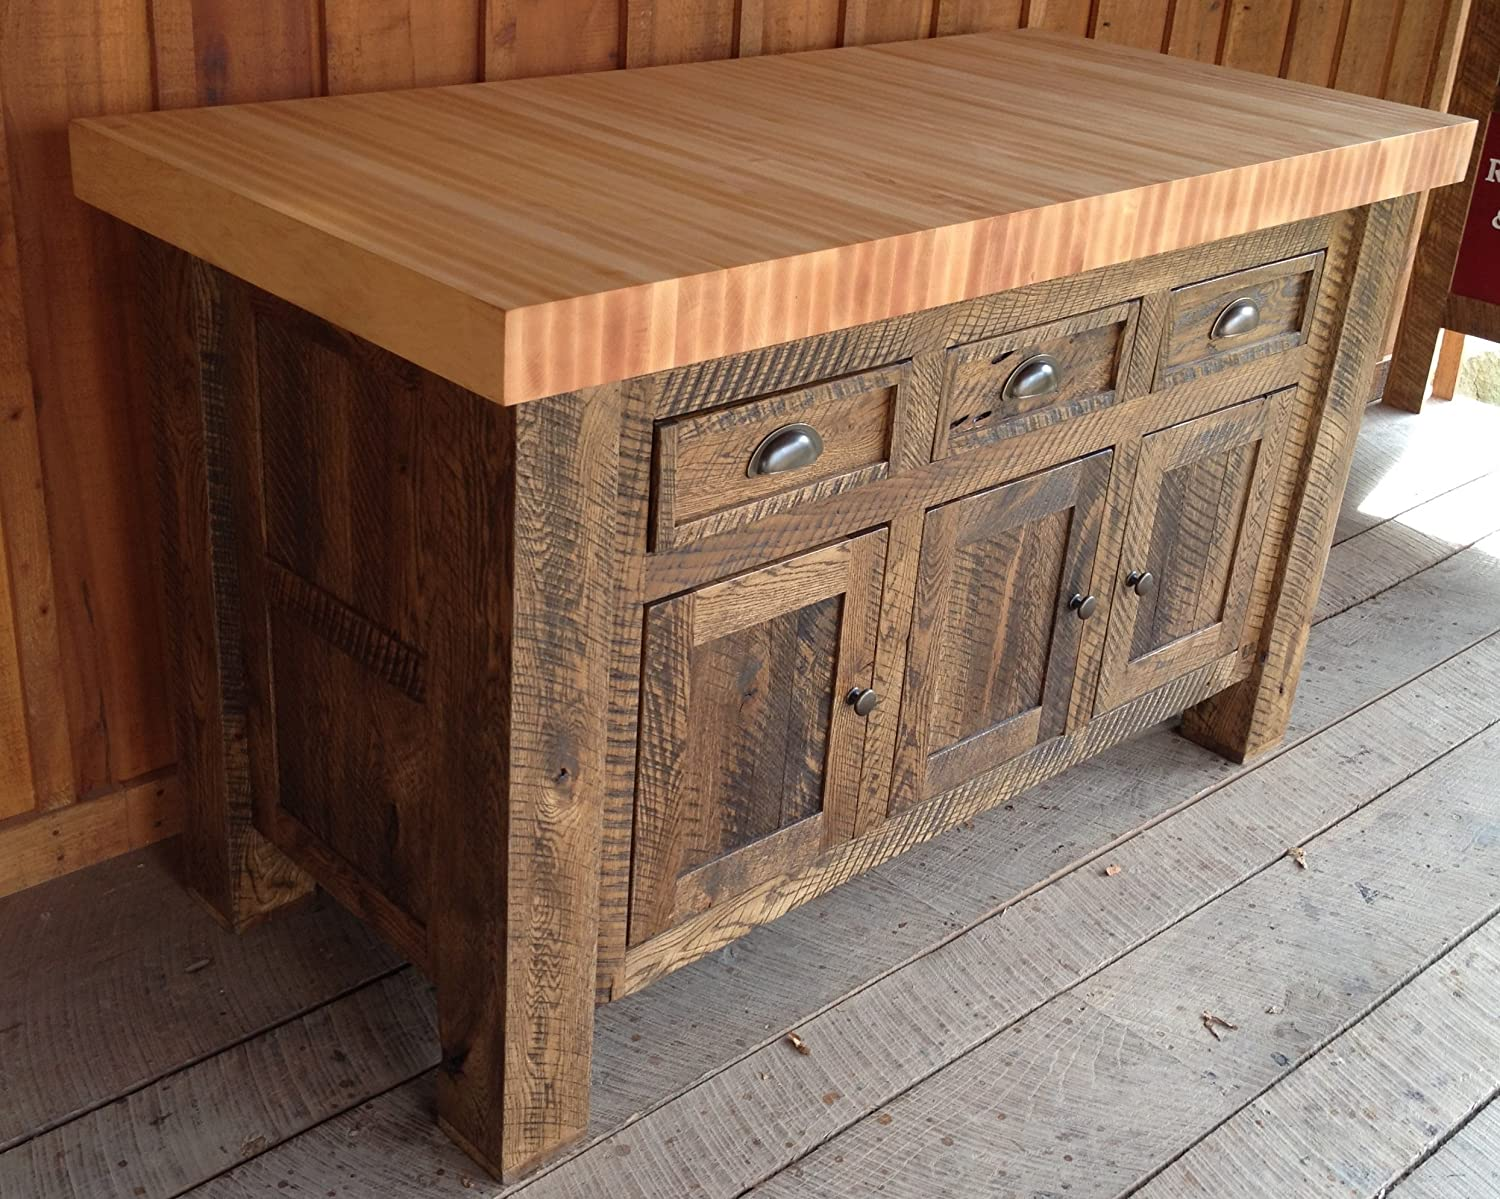 Oak/Hard Maple Functional Butcher Block Island